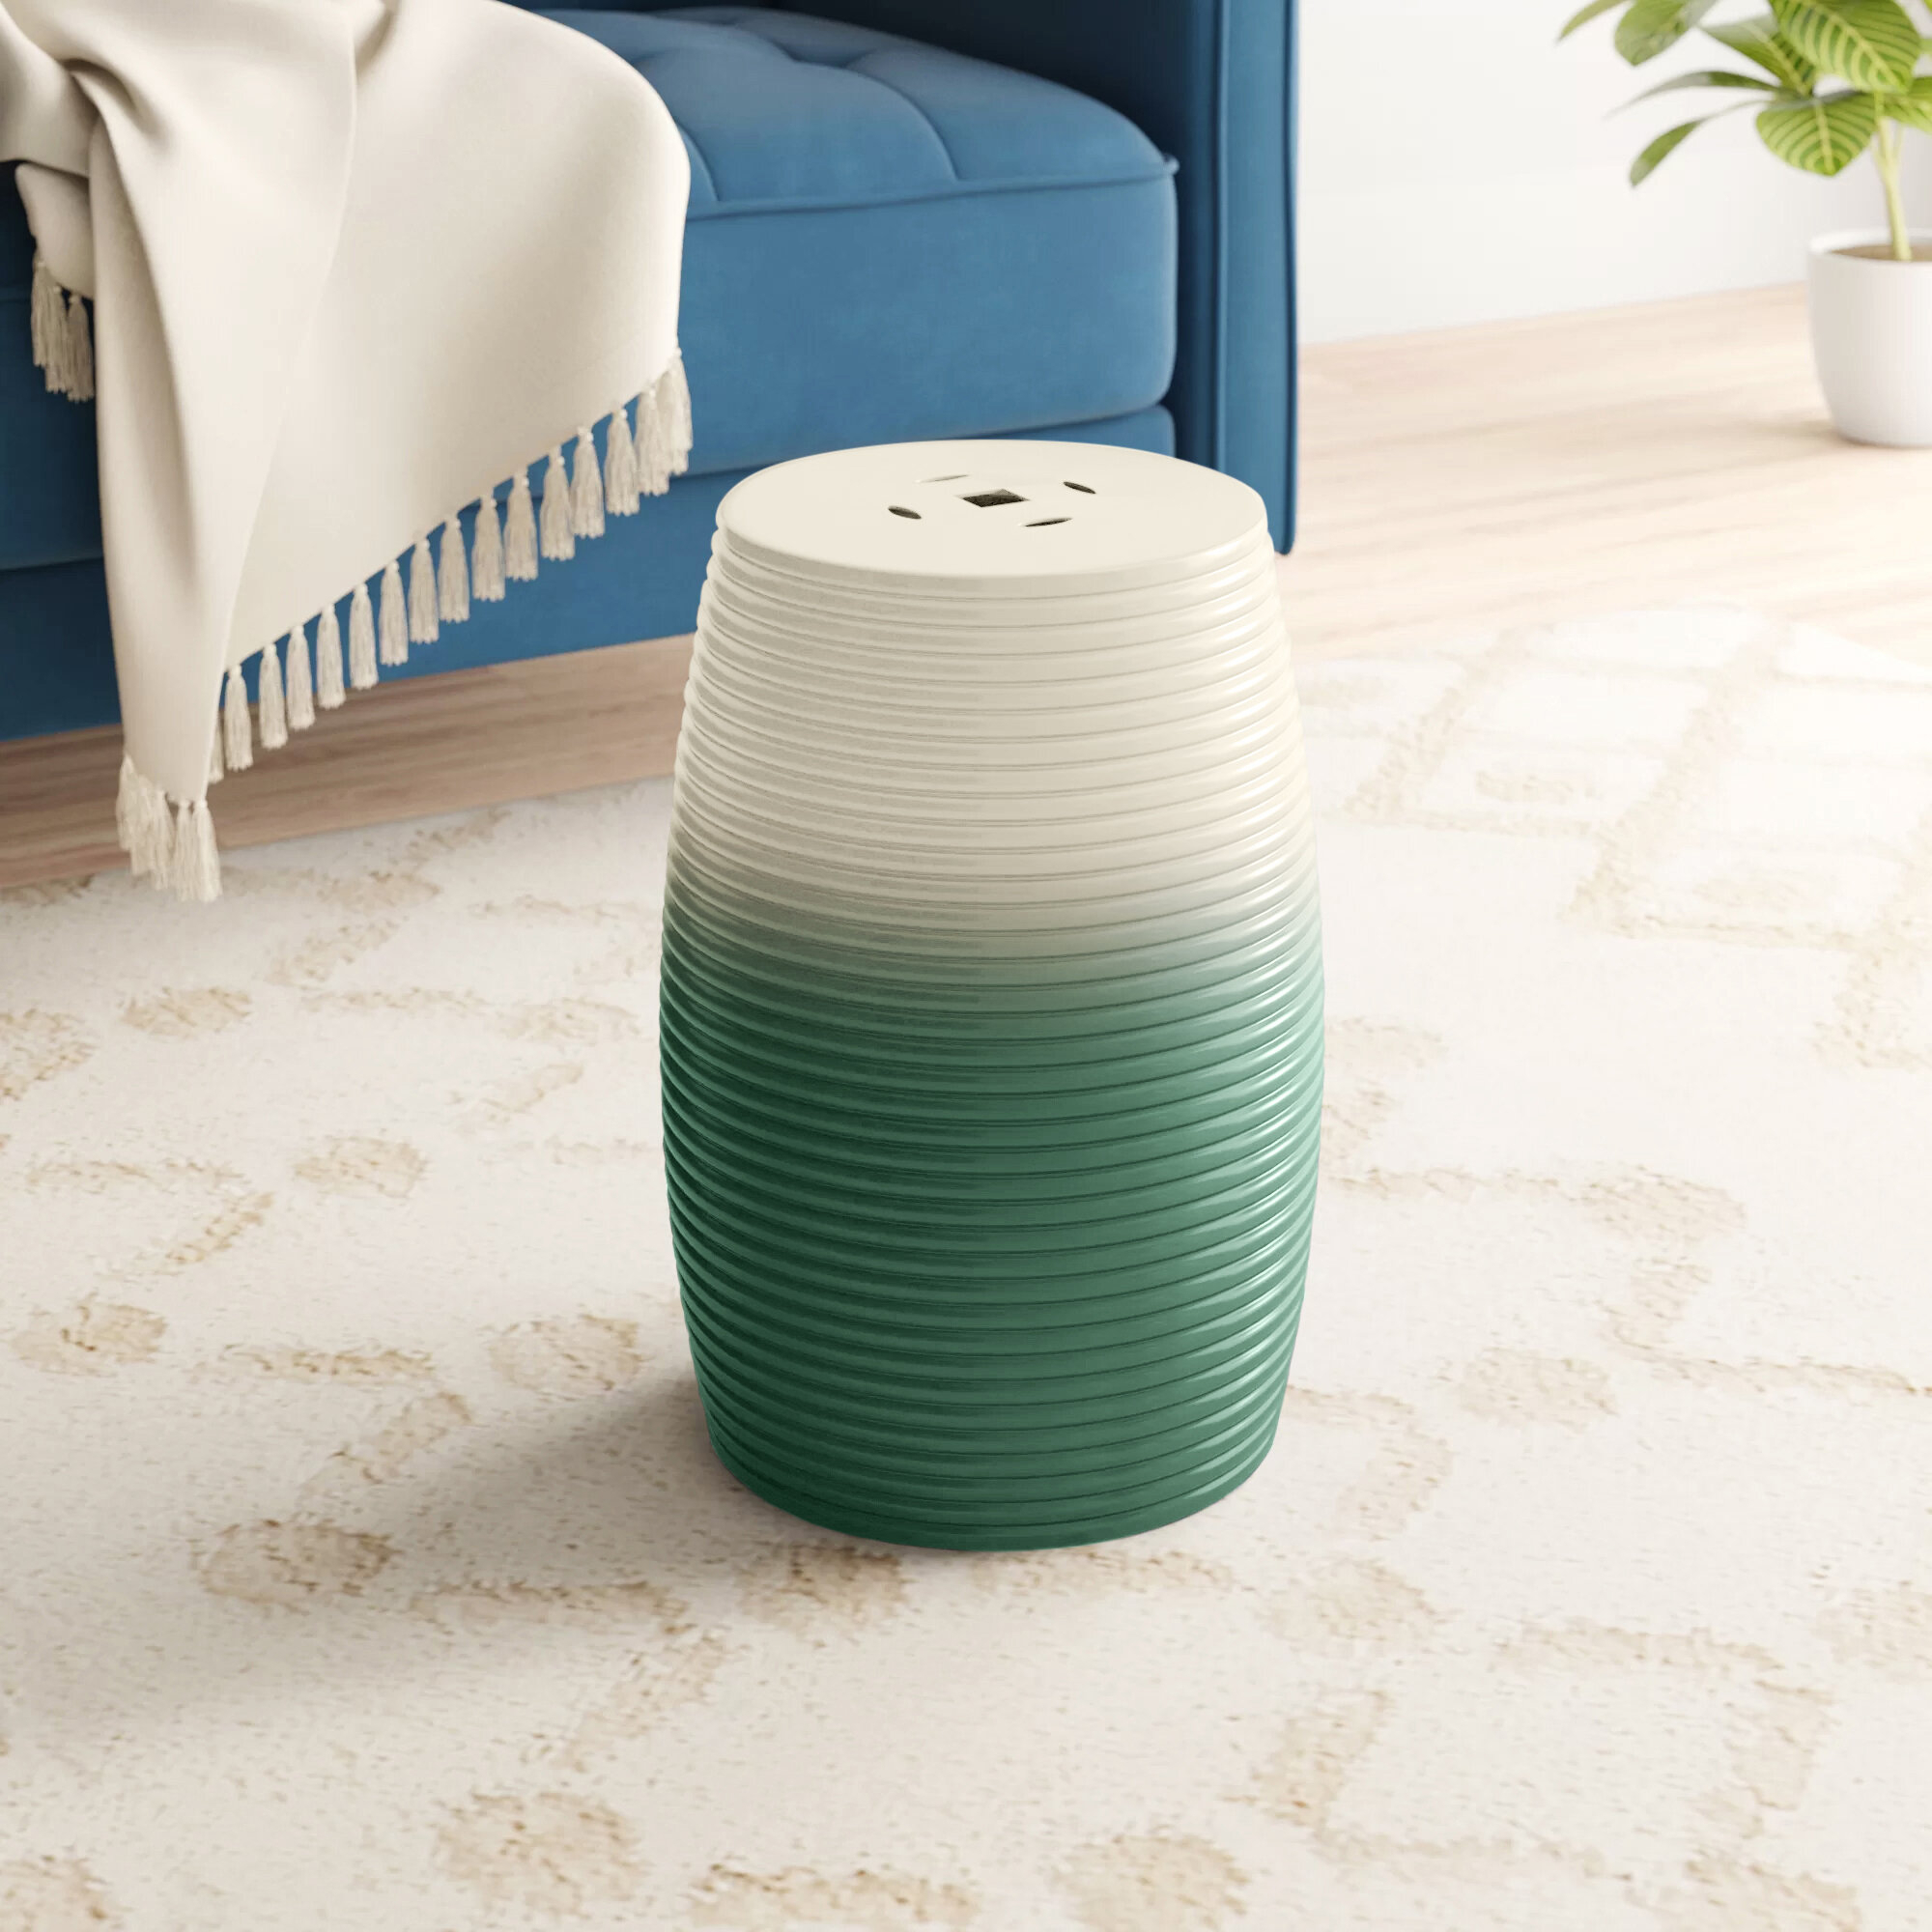 Garden Green Accent Stools You'Ll Love In 2020 | Wayfair Throughout Maci Tropical Birds Garden Stools (View 21 of 25)